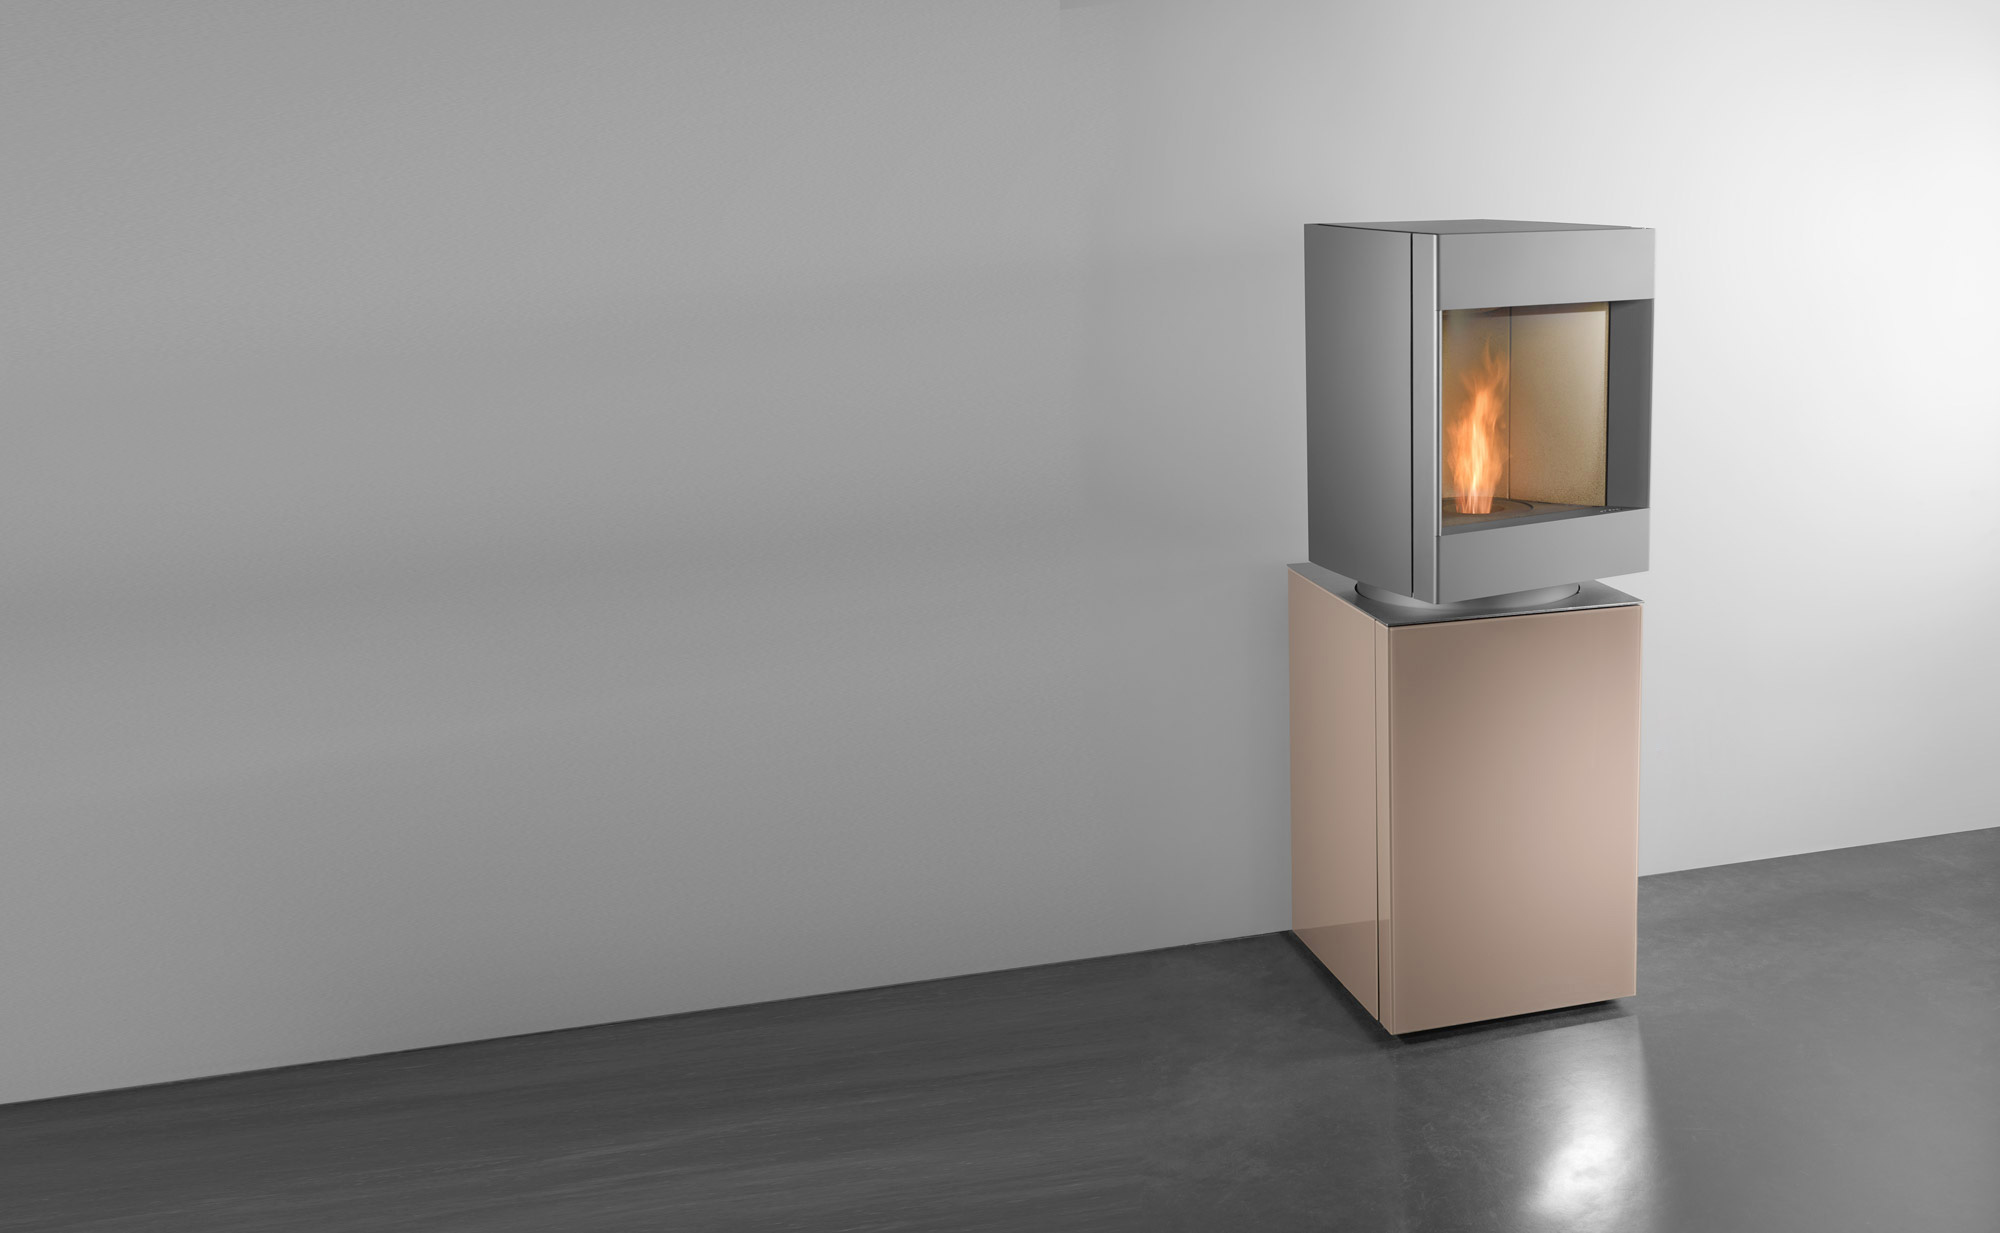 Focus on: the Stûv P-10 stove